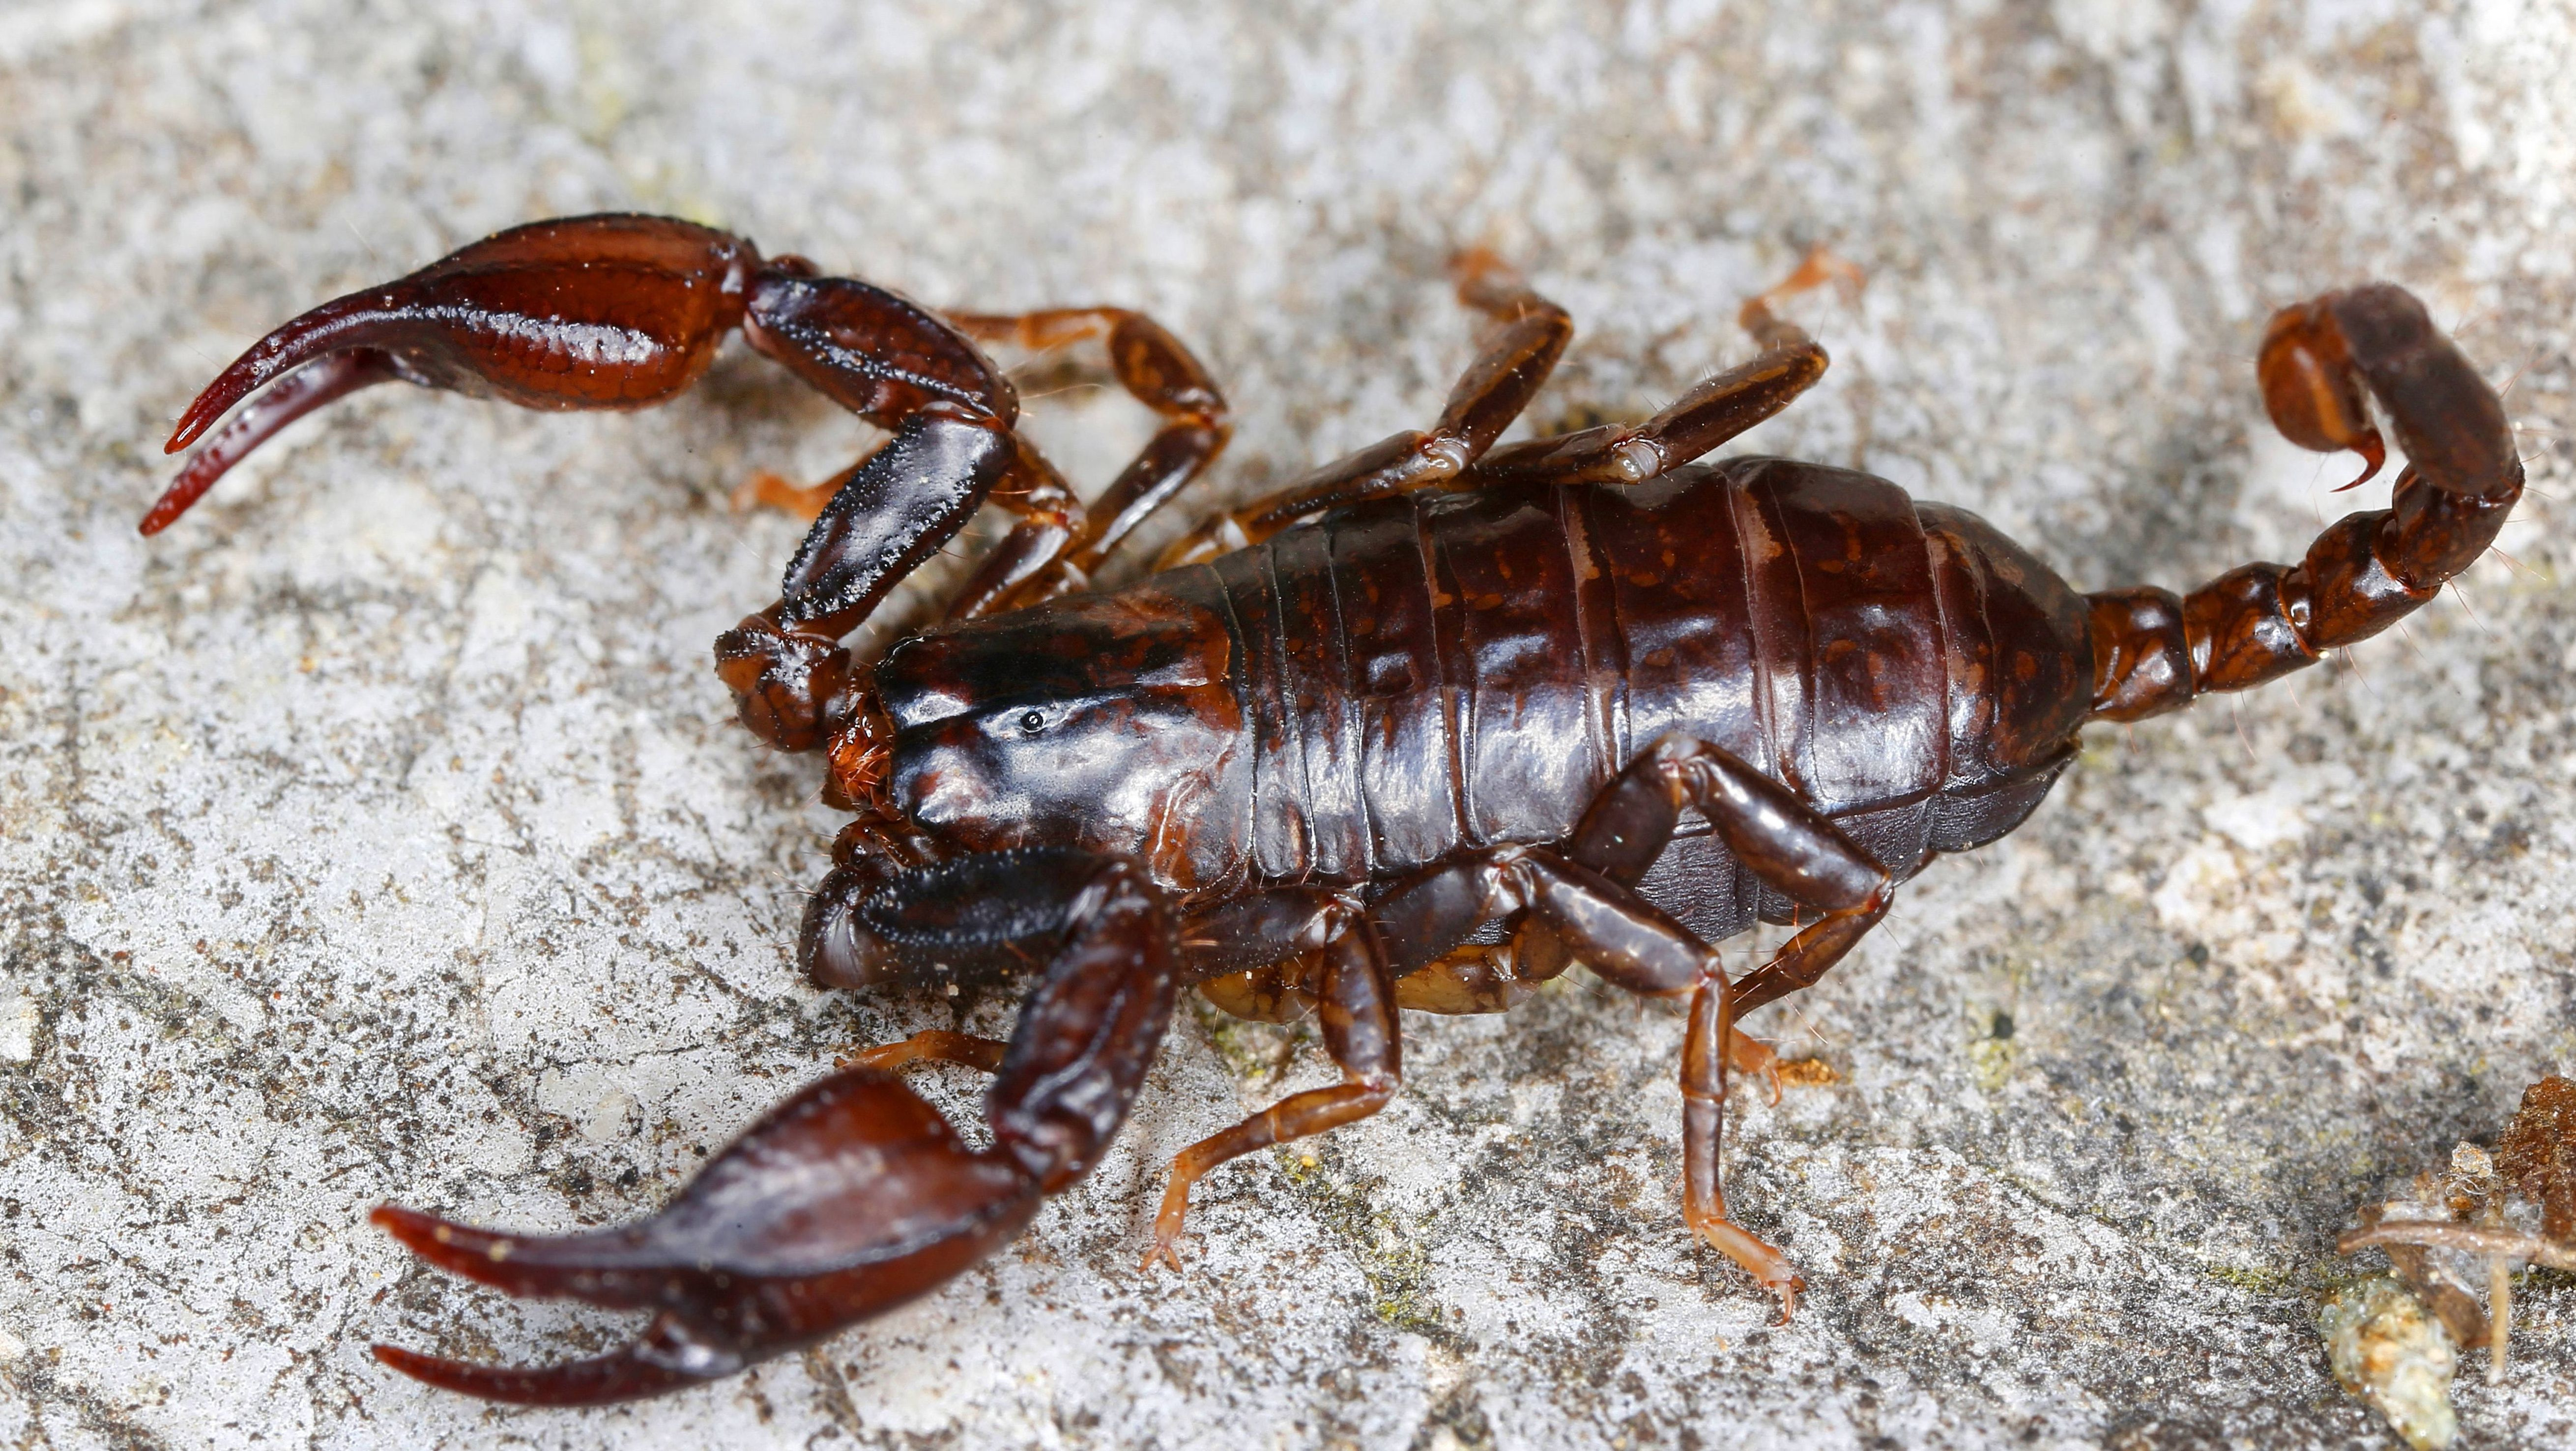 Sogenannter Alpenskorpion (Euscorpius germanus)